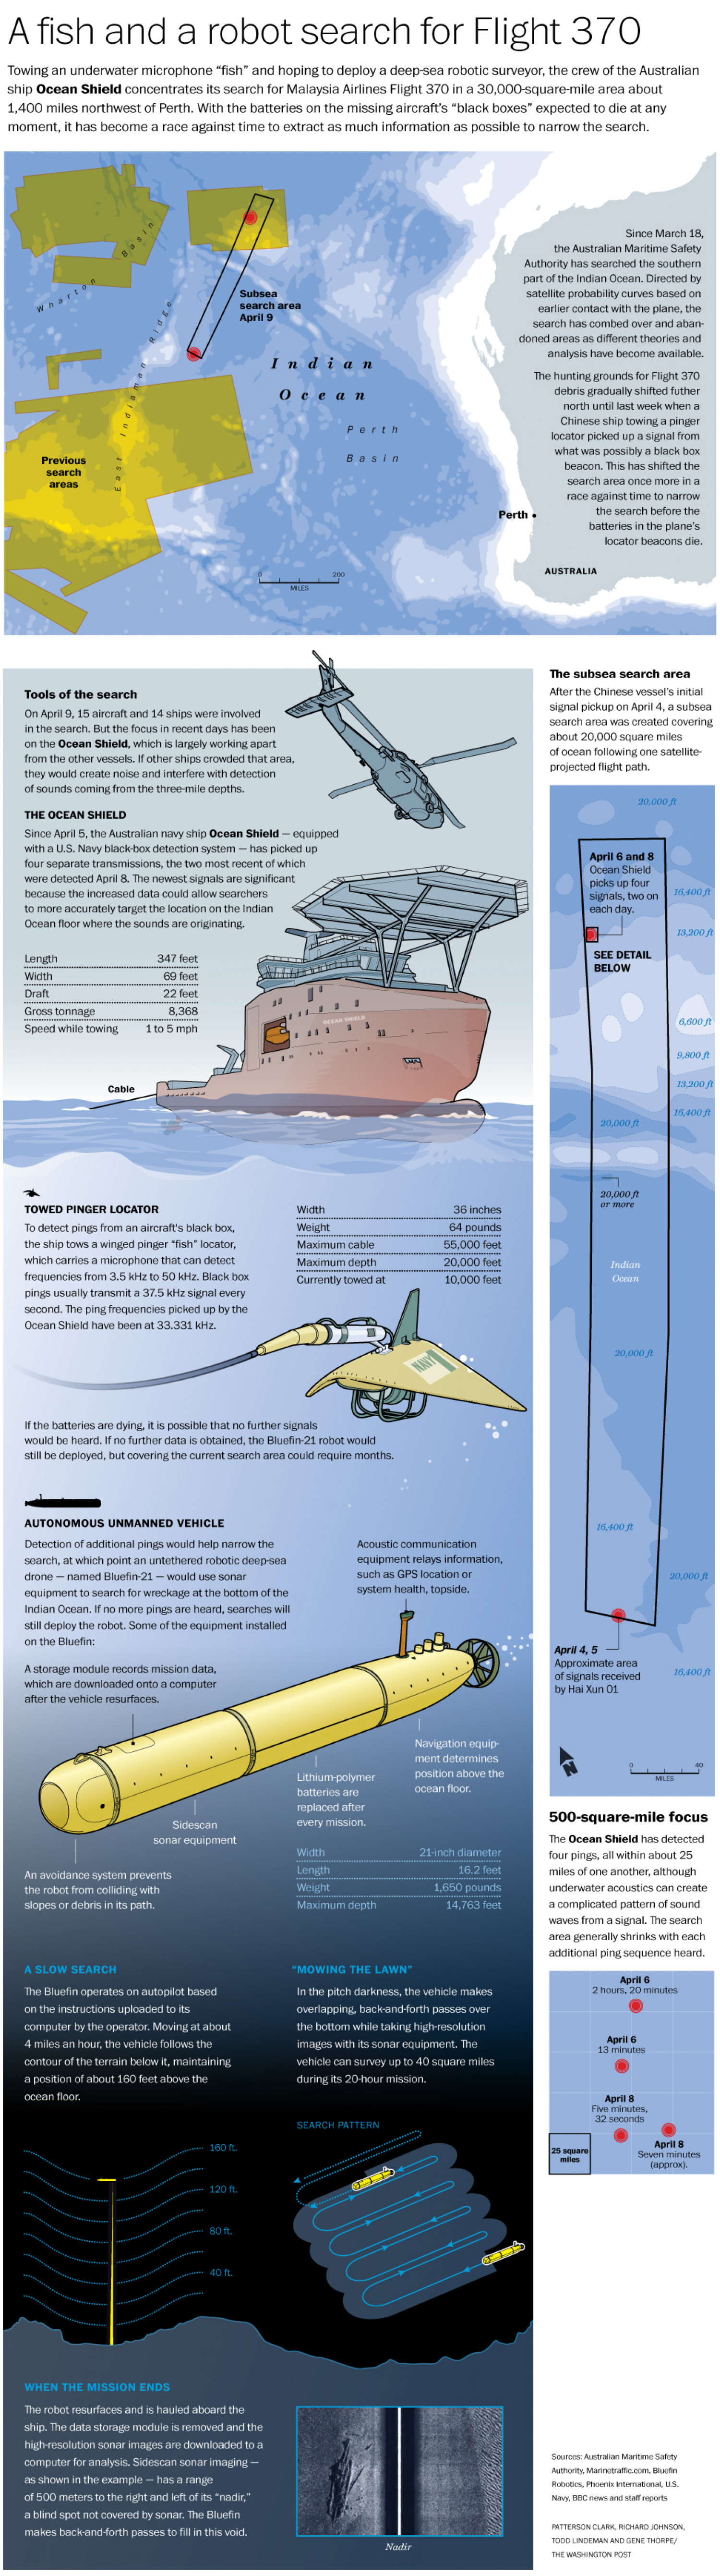 A Fish and a Robot search for Flight 370 Infographic